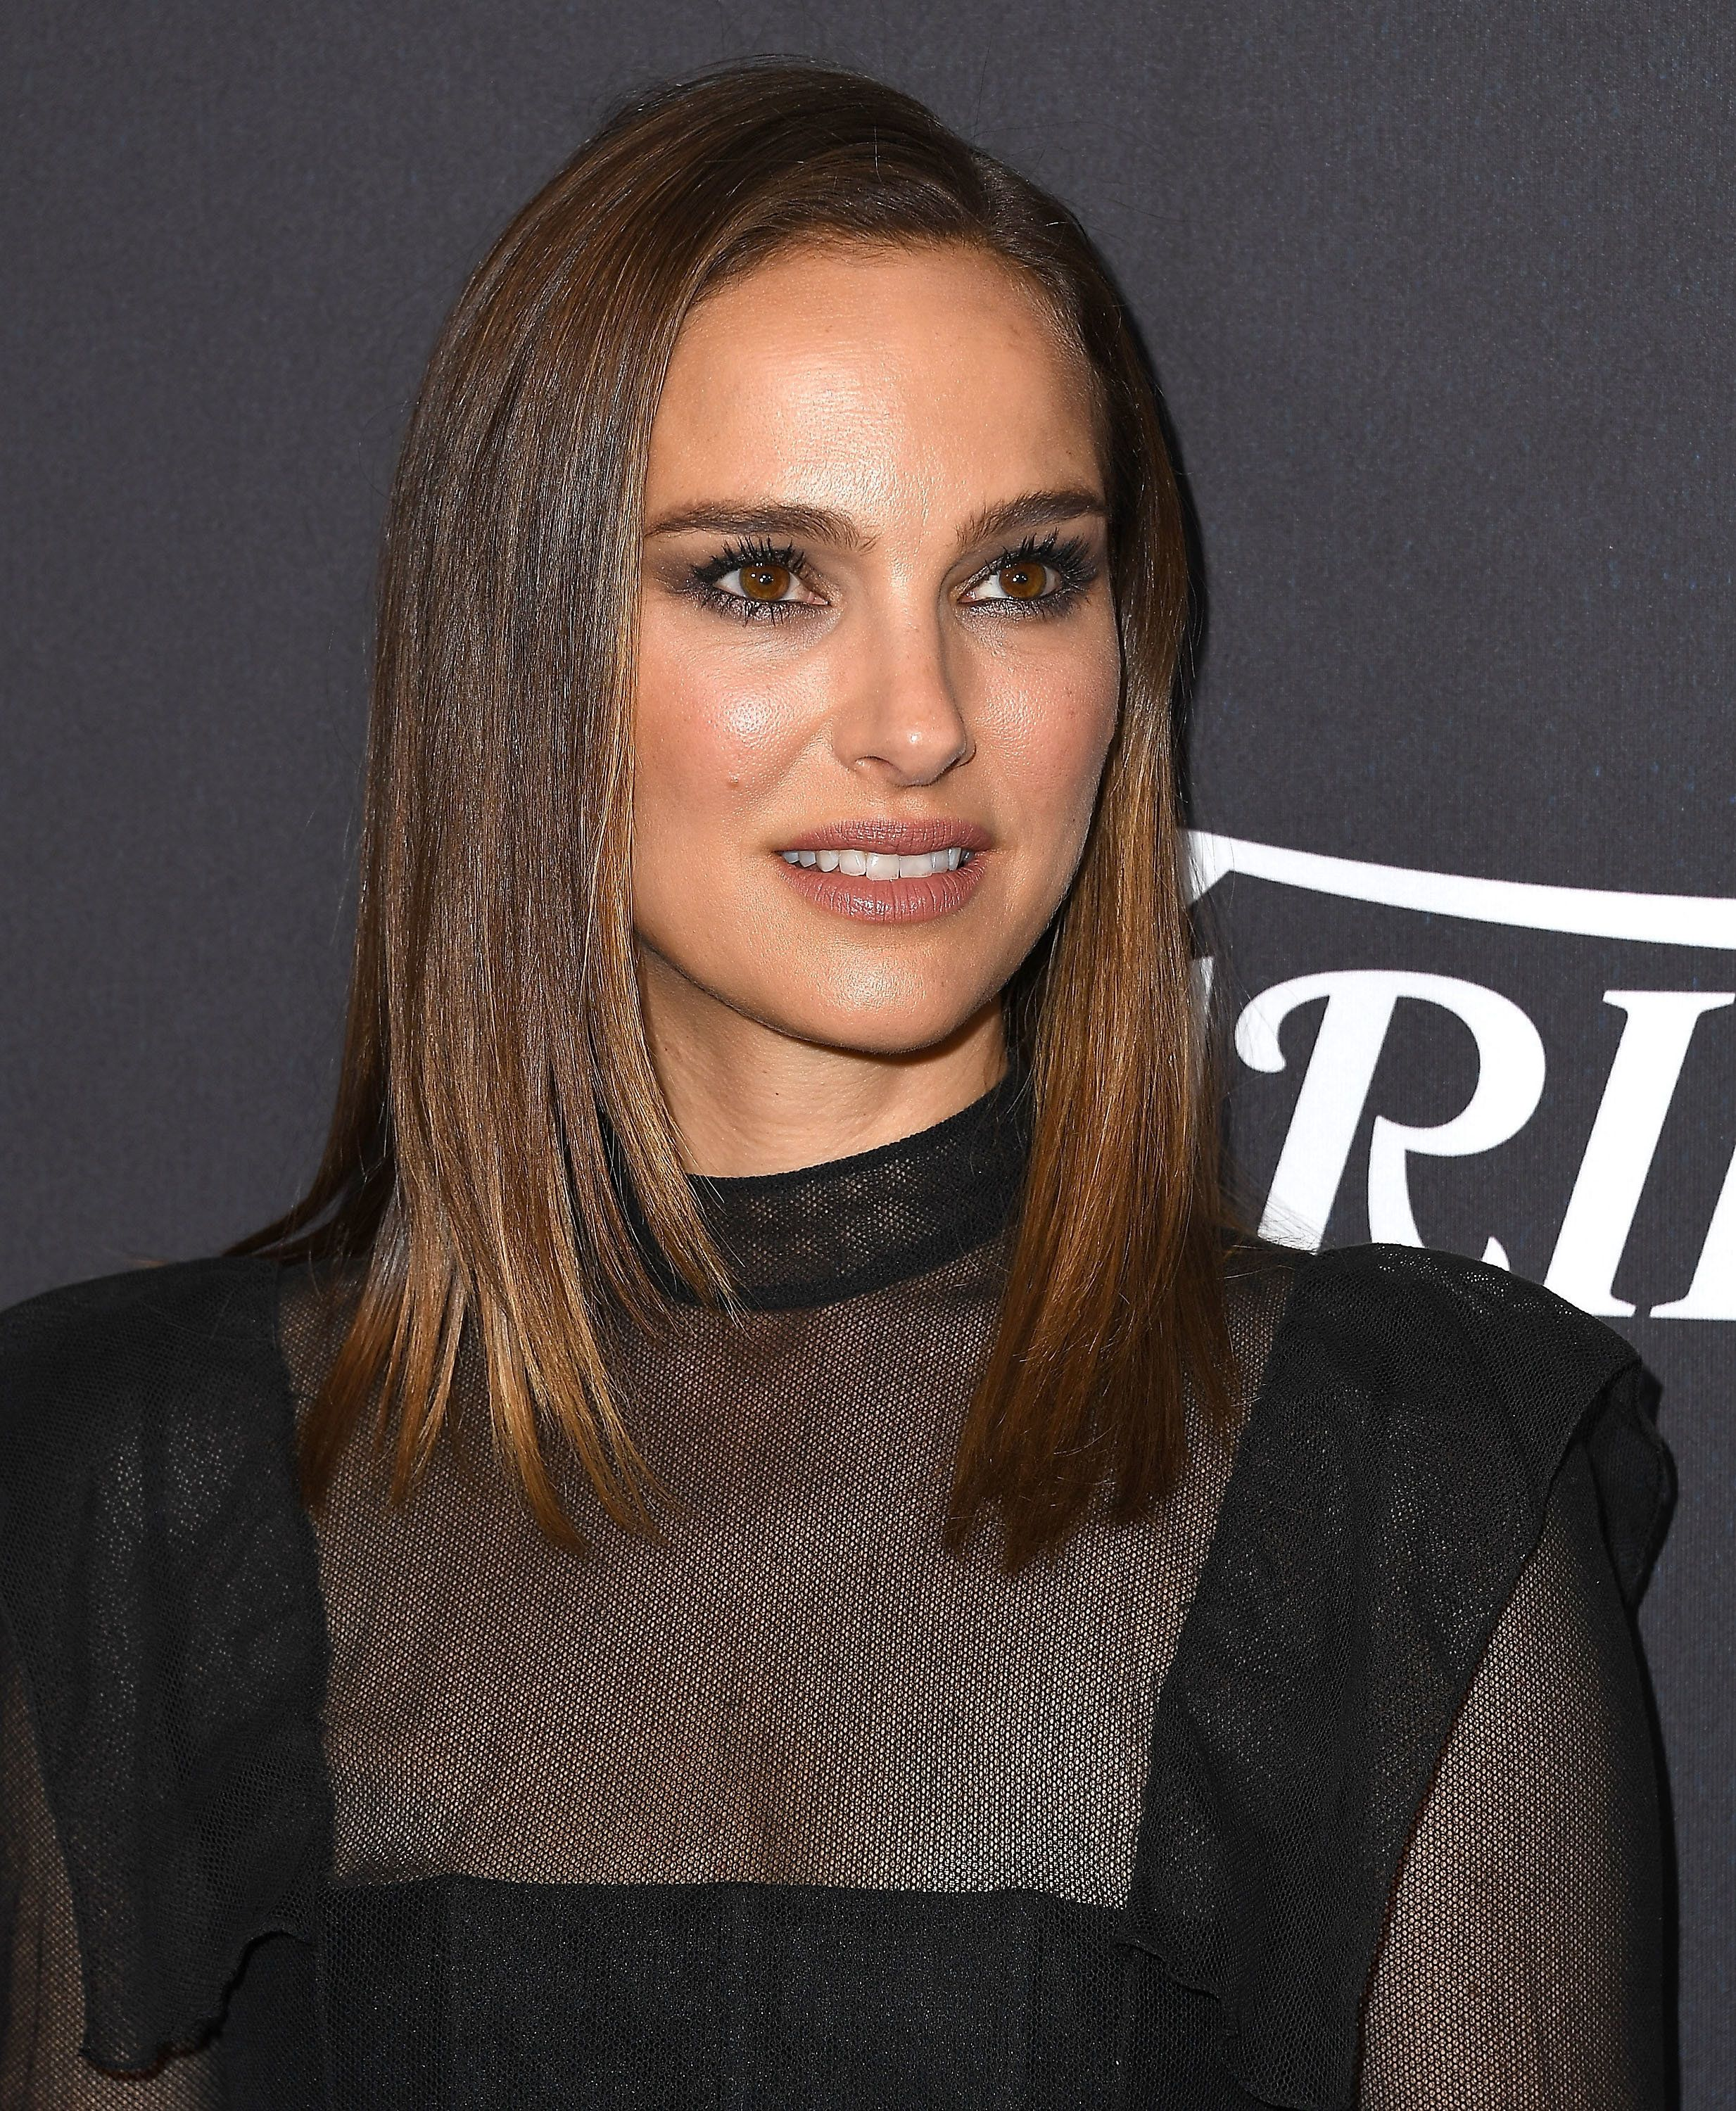 BEVERLY HILLS, CA - OCTOBER 12:  Natalie Portman arrives at the Variety's Power Of Women: Los Angeles  at the Beverly Wilshire Four Seasons Hotel on October 12, 2018 in Beverly Hills, California.  (Photo by Steve Granitz/WireImage)